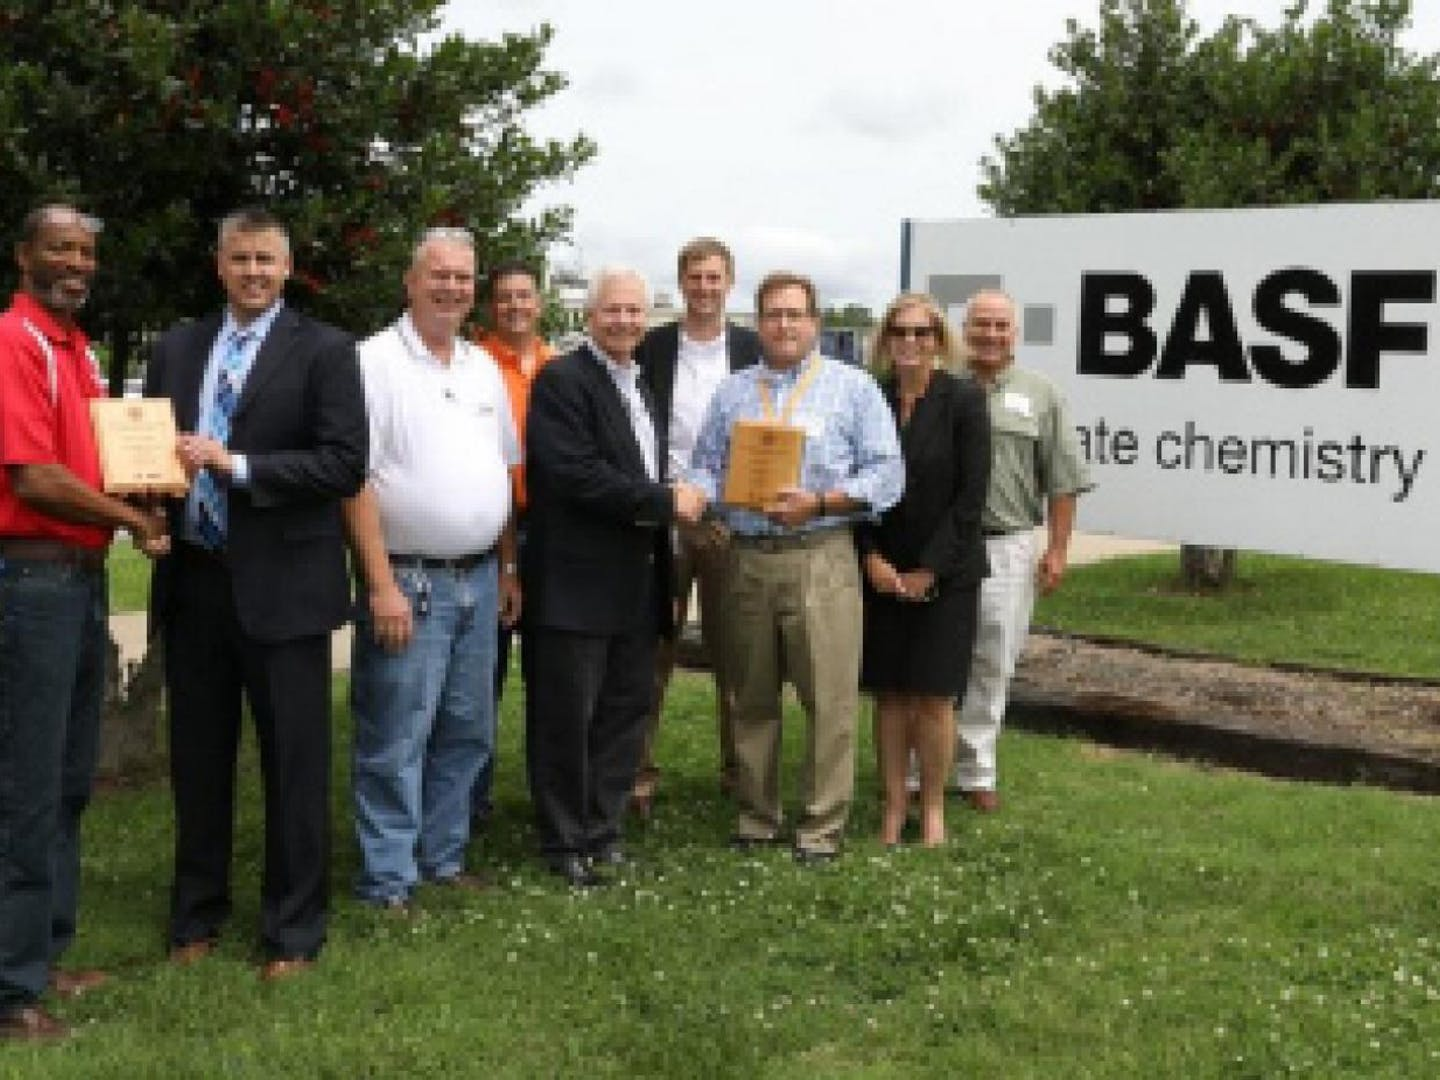 epb-recognizes-basf-for-leadership-in-sustainable-energy-usage.jpeg